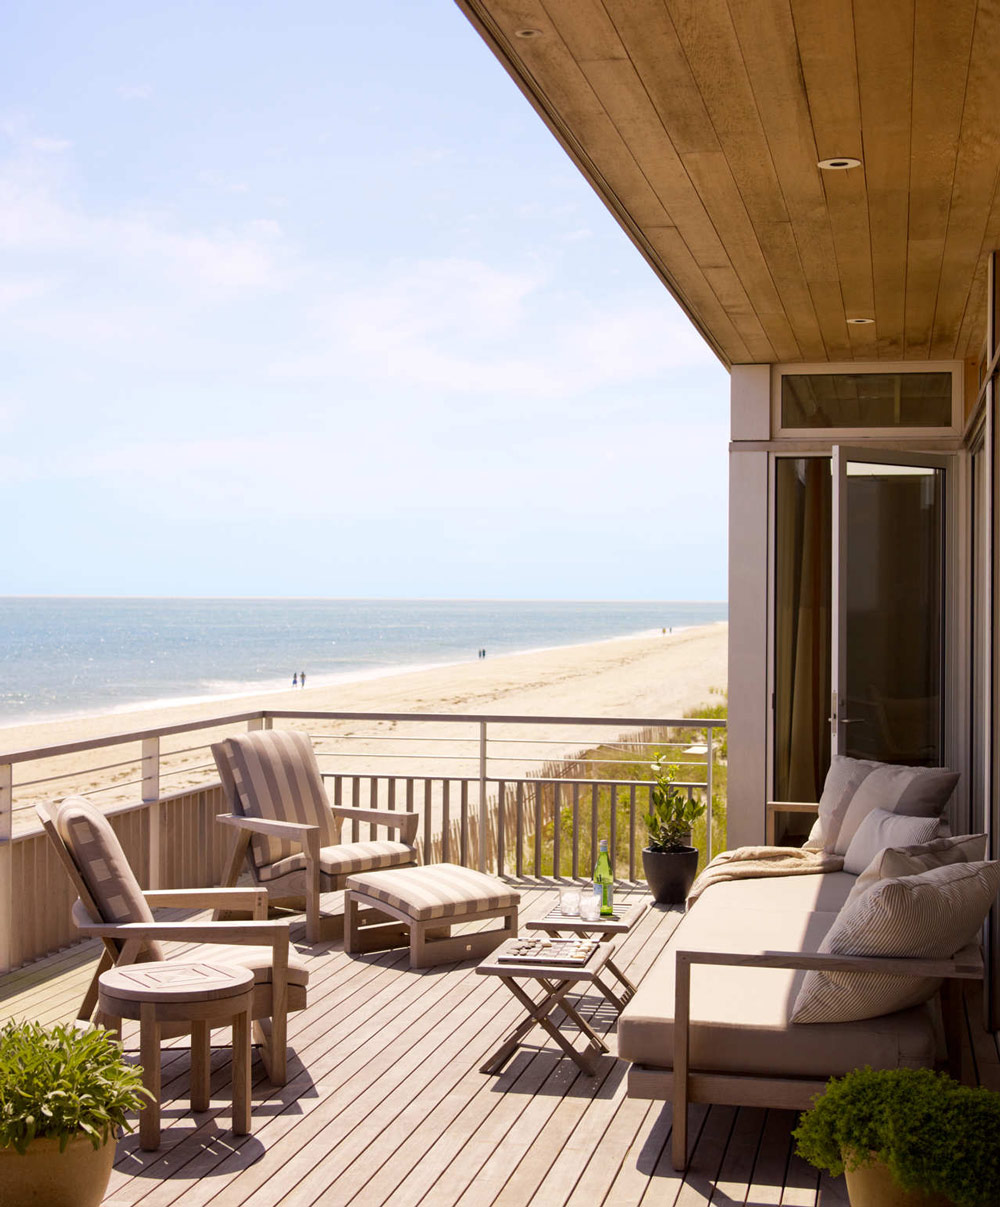 Balcony, Outdoor Living, Surfside House in Bridgehampton, New York by Stelle Architects